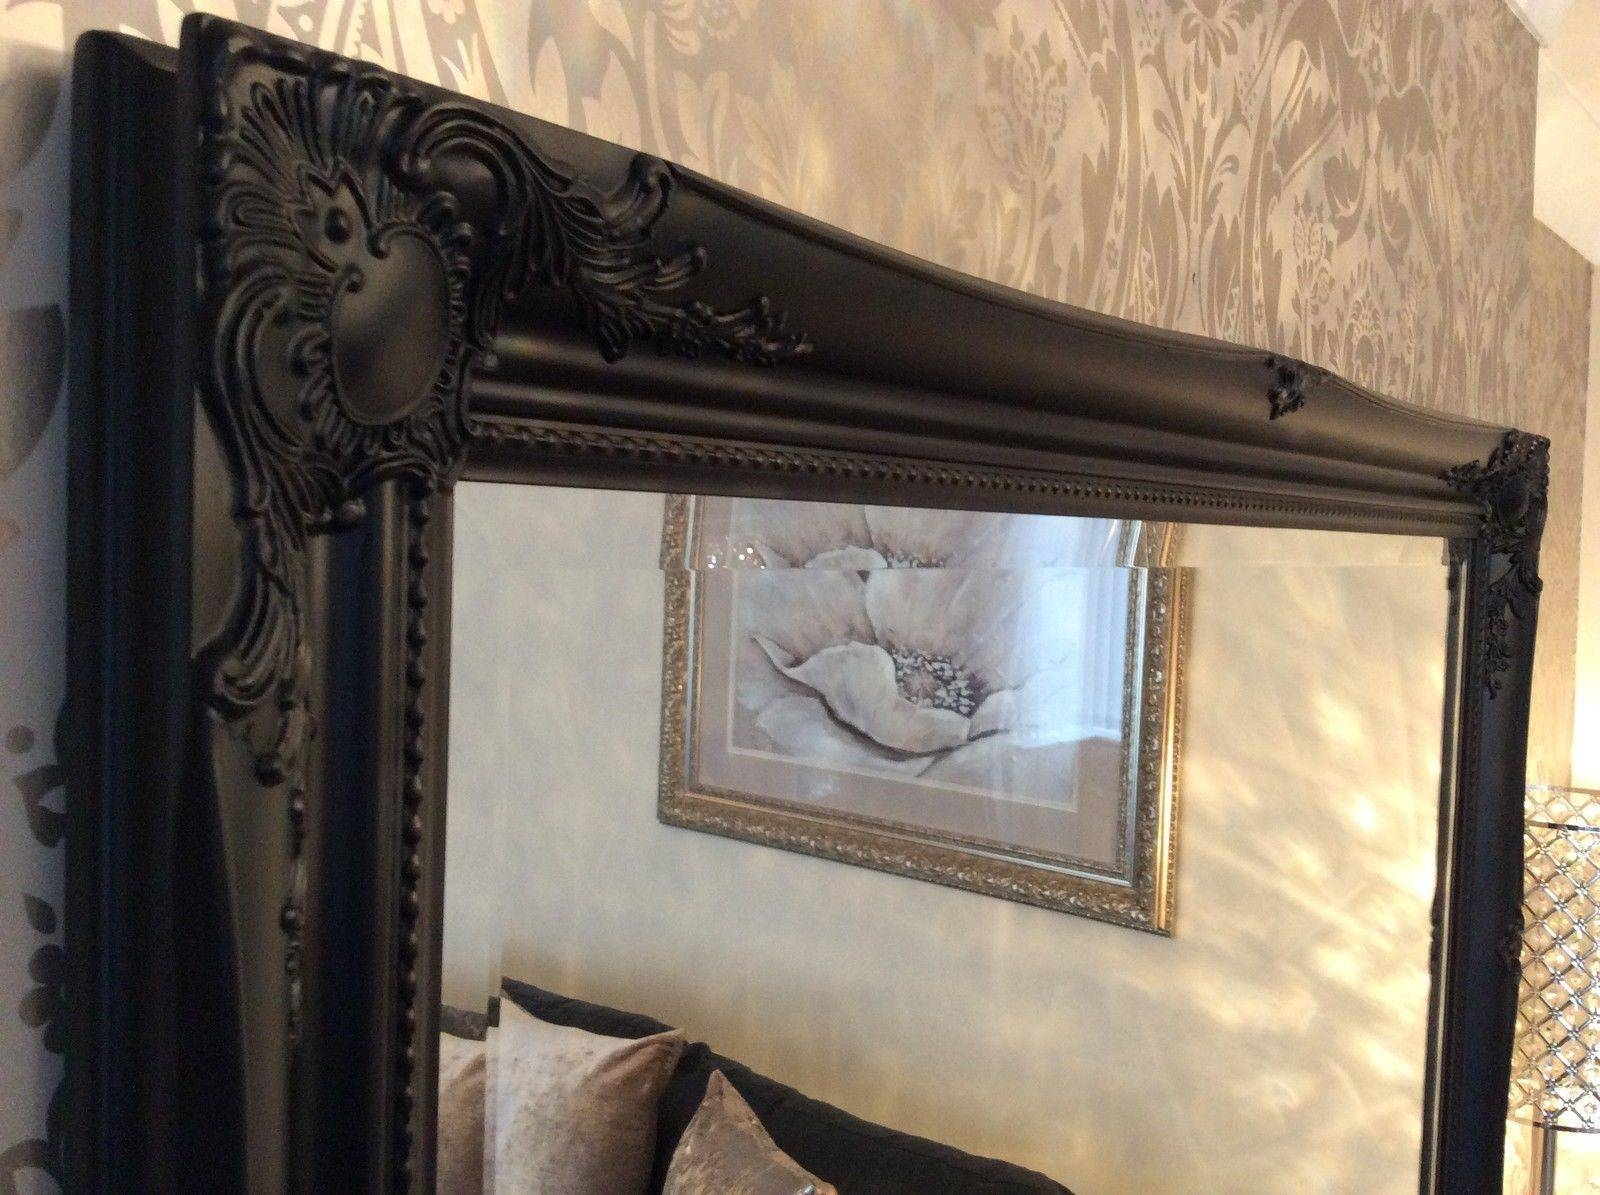 New Black Shabby Chic Ornate Mirror - Choose Your Size - Ready To inside Black Ornate Mirrors (Image 7 of 15)